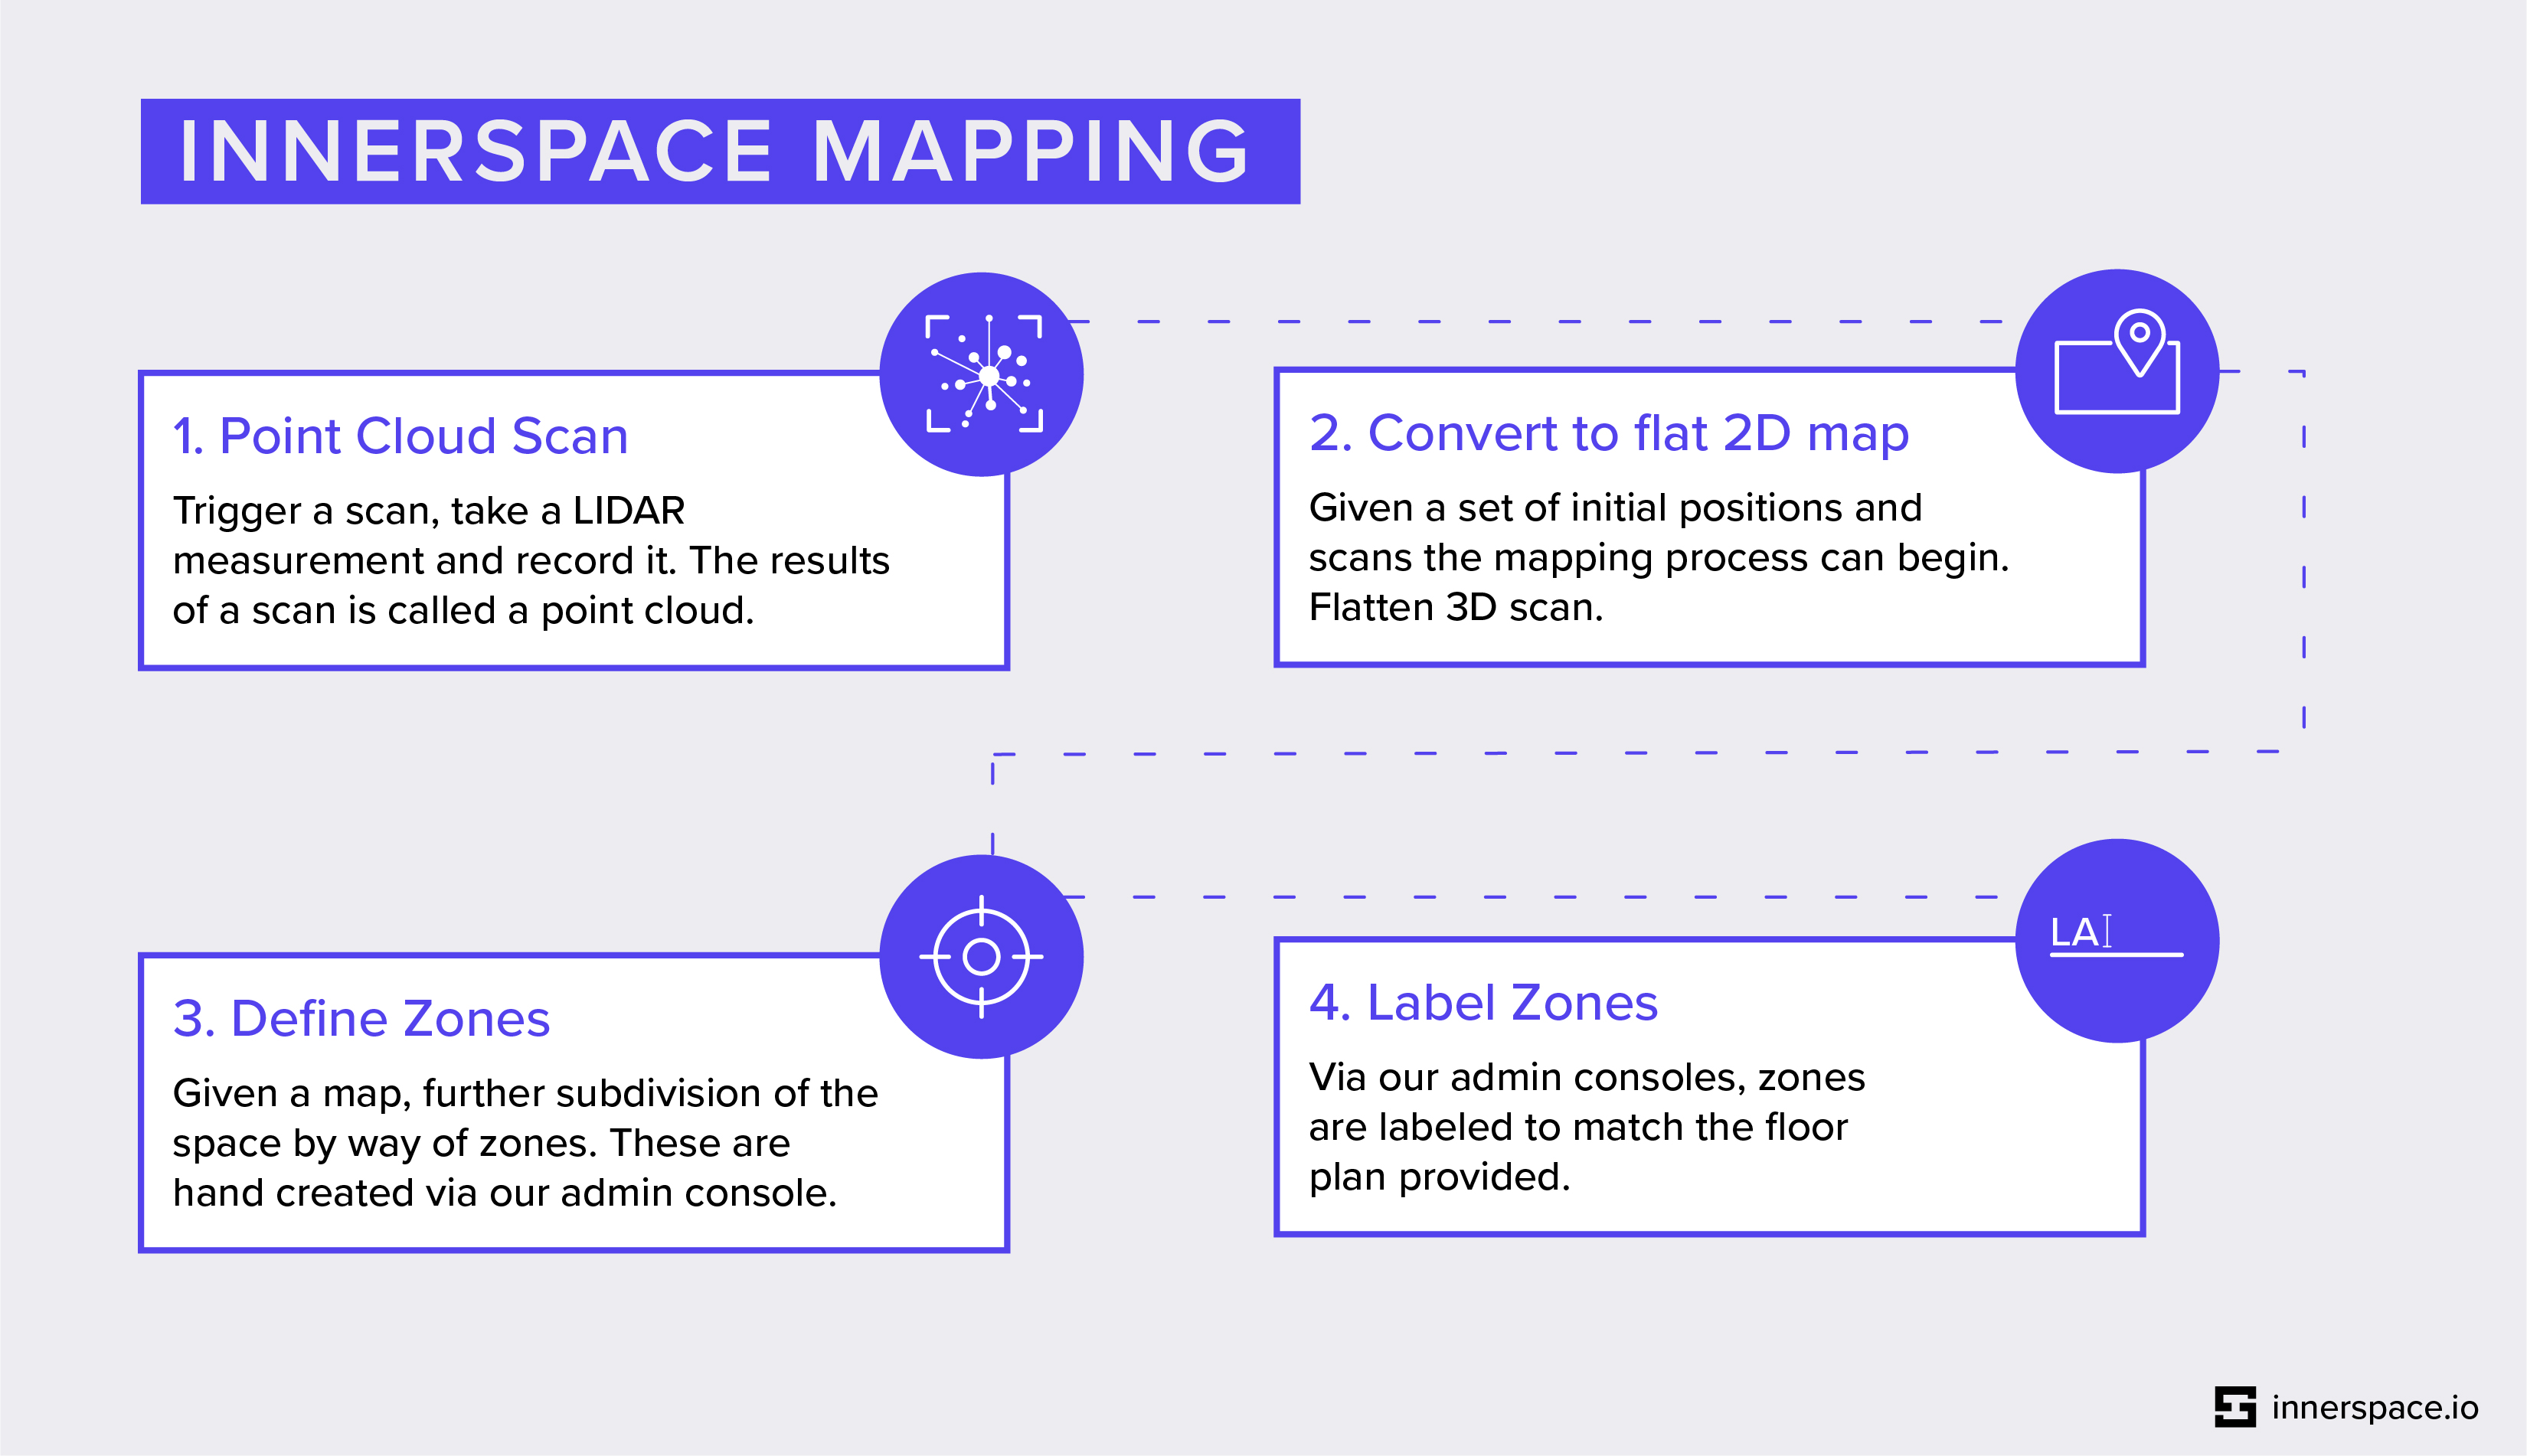 InnerSpace-MappingInfographic_June2019